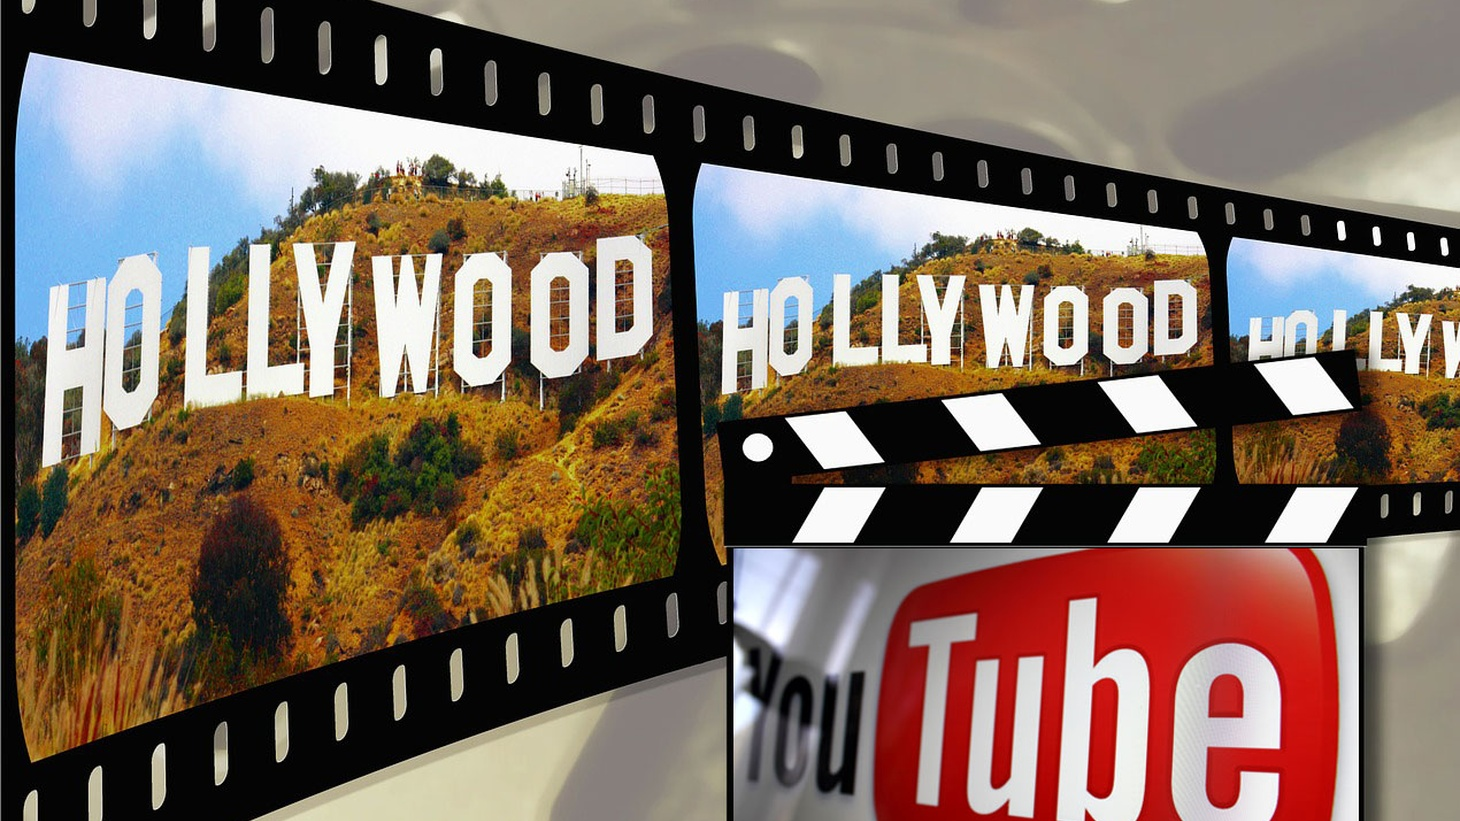 More and more consumers want entertainment over the Internet, and Silicon Valley's tech companies are happy to oblige. But it's Hollywood that produces quality content. Can they co-exist or are they on a collision course?